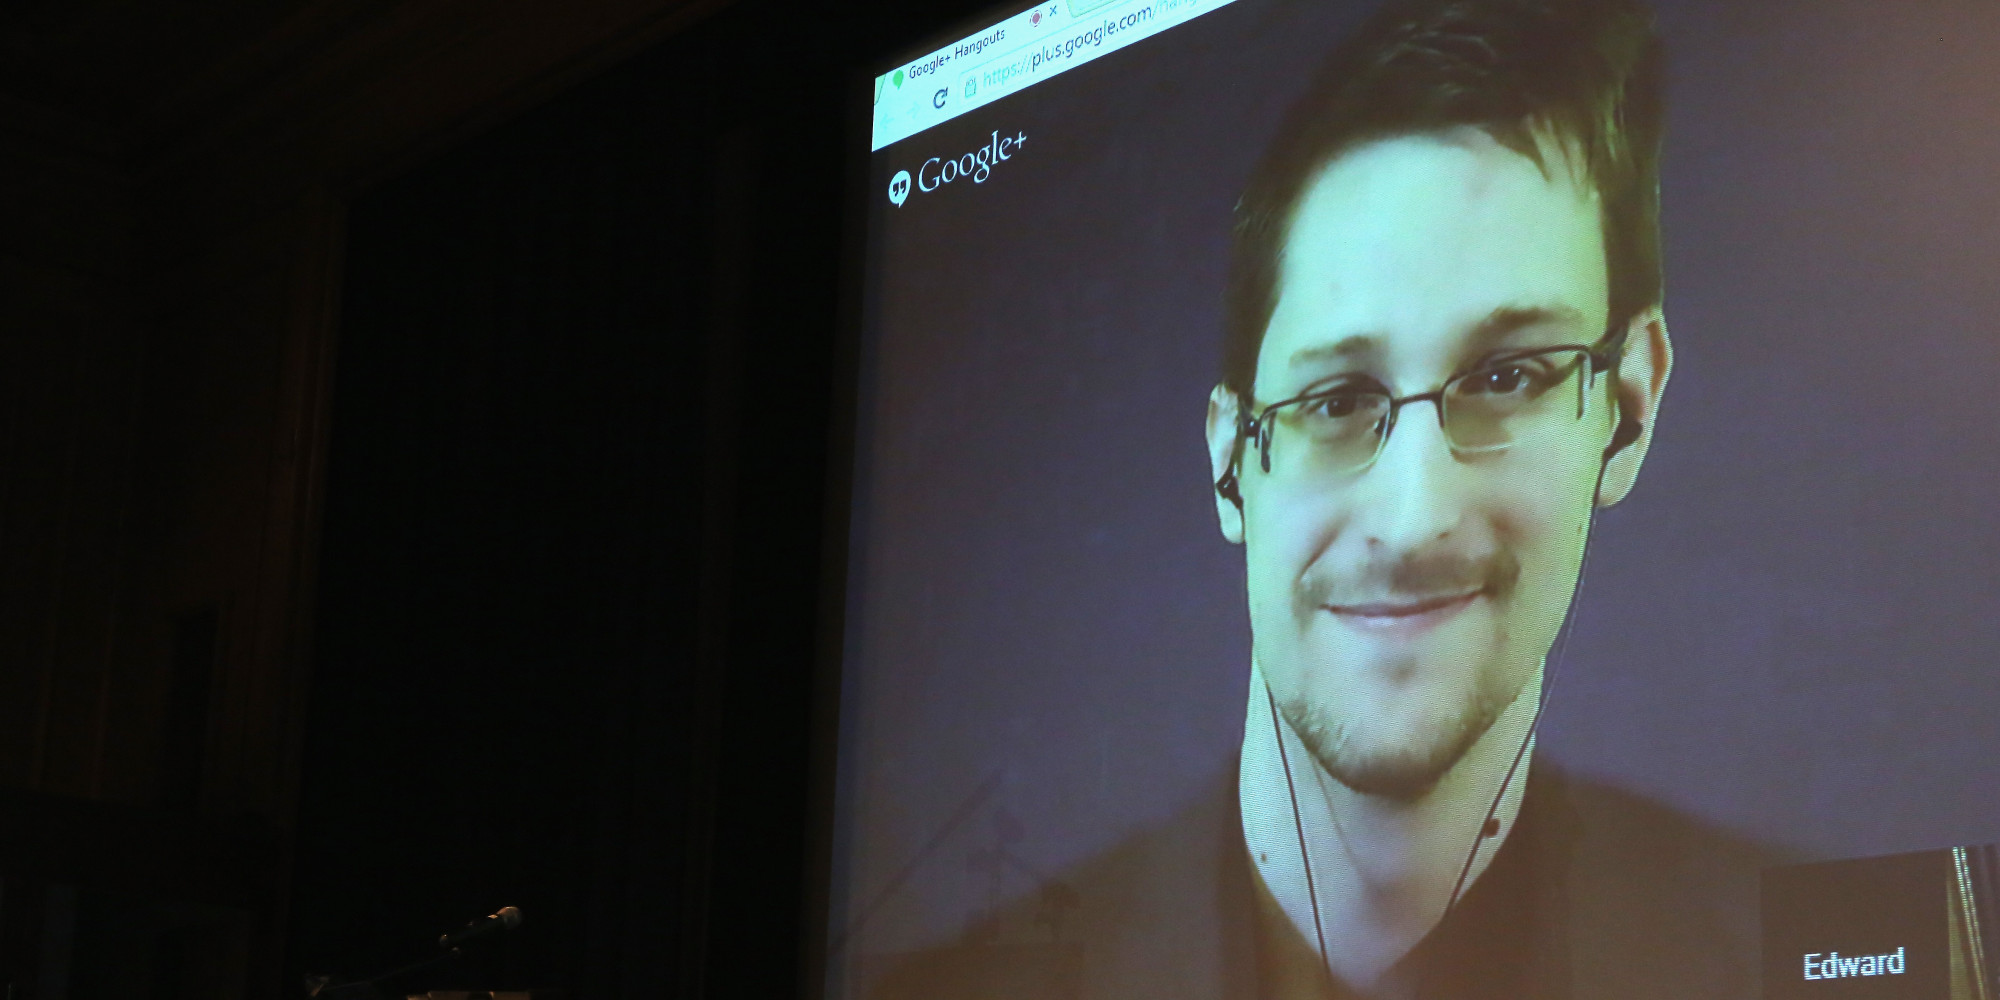 Snowden Files Provide New Insight On The NSA And The Power It Wields